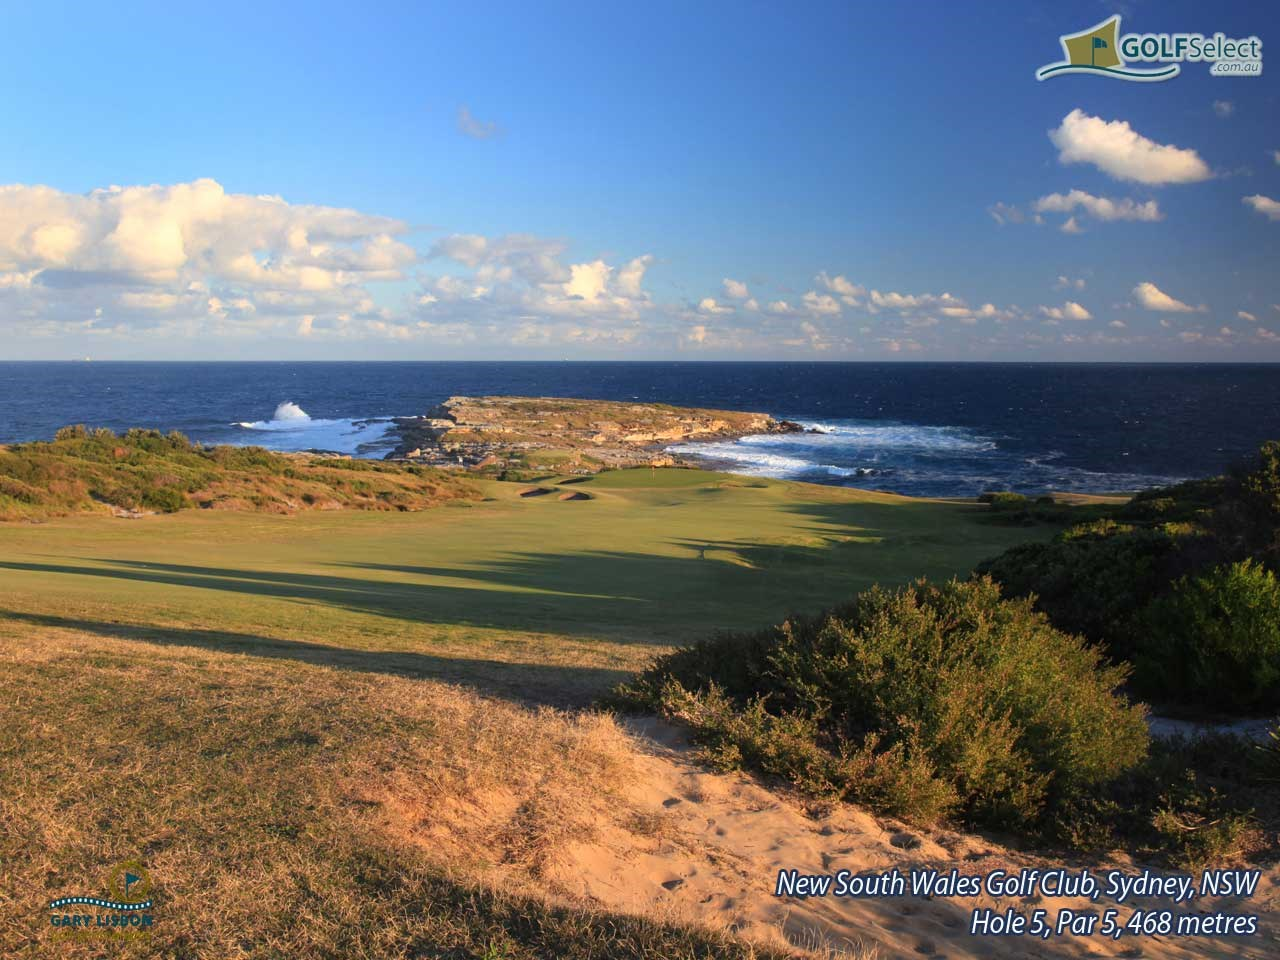 The New South Wales Golf Club Hole 5, Par 5, 468 metres